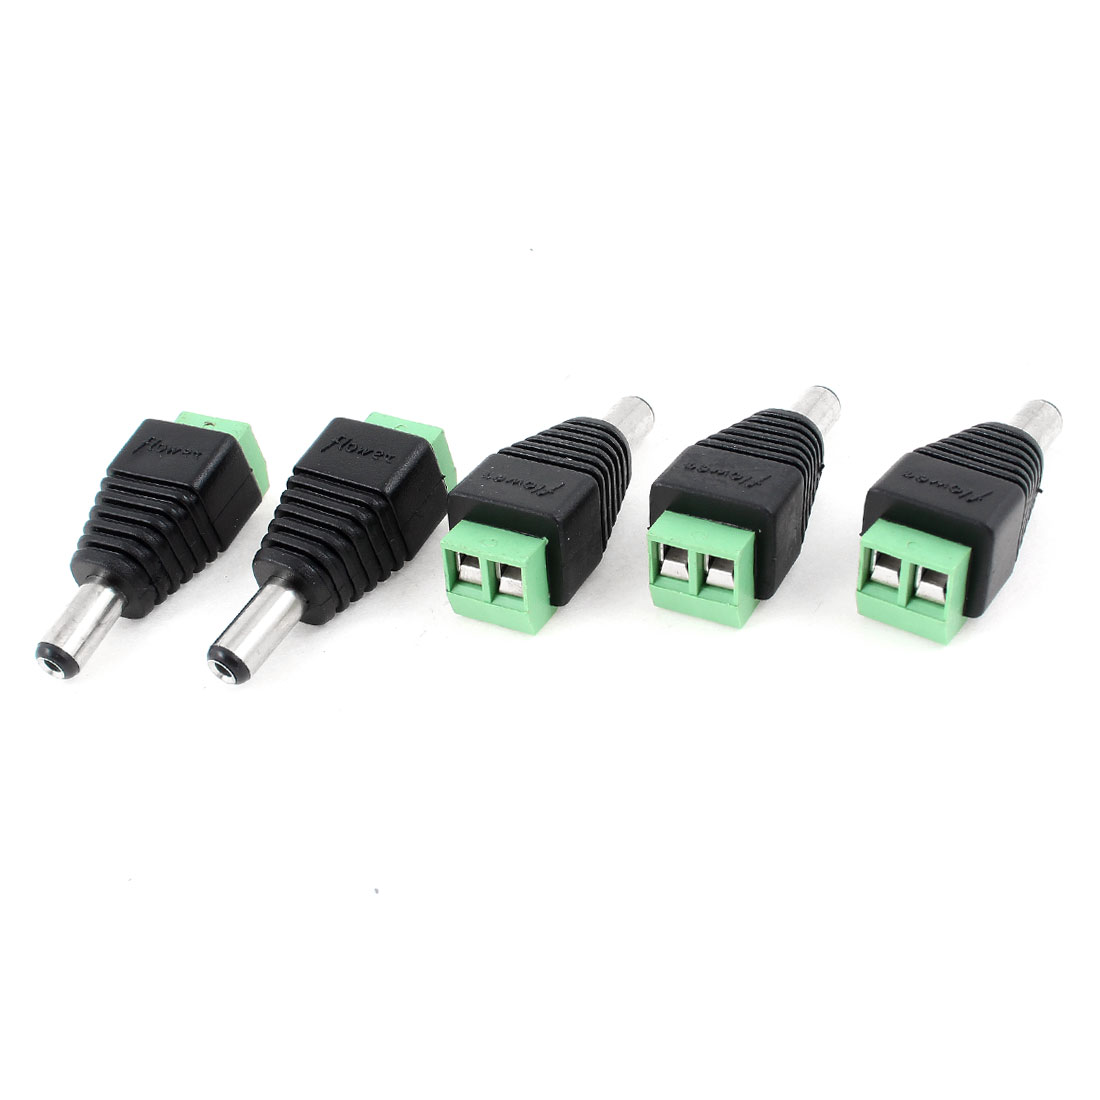 2.1mm x 5.5mm Male Jack DC Male Power Cable Connector for CCTV Camera